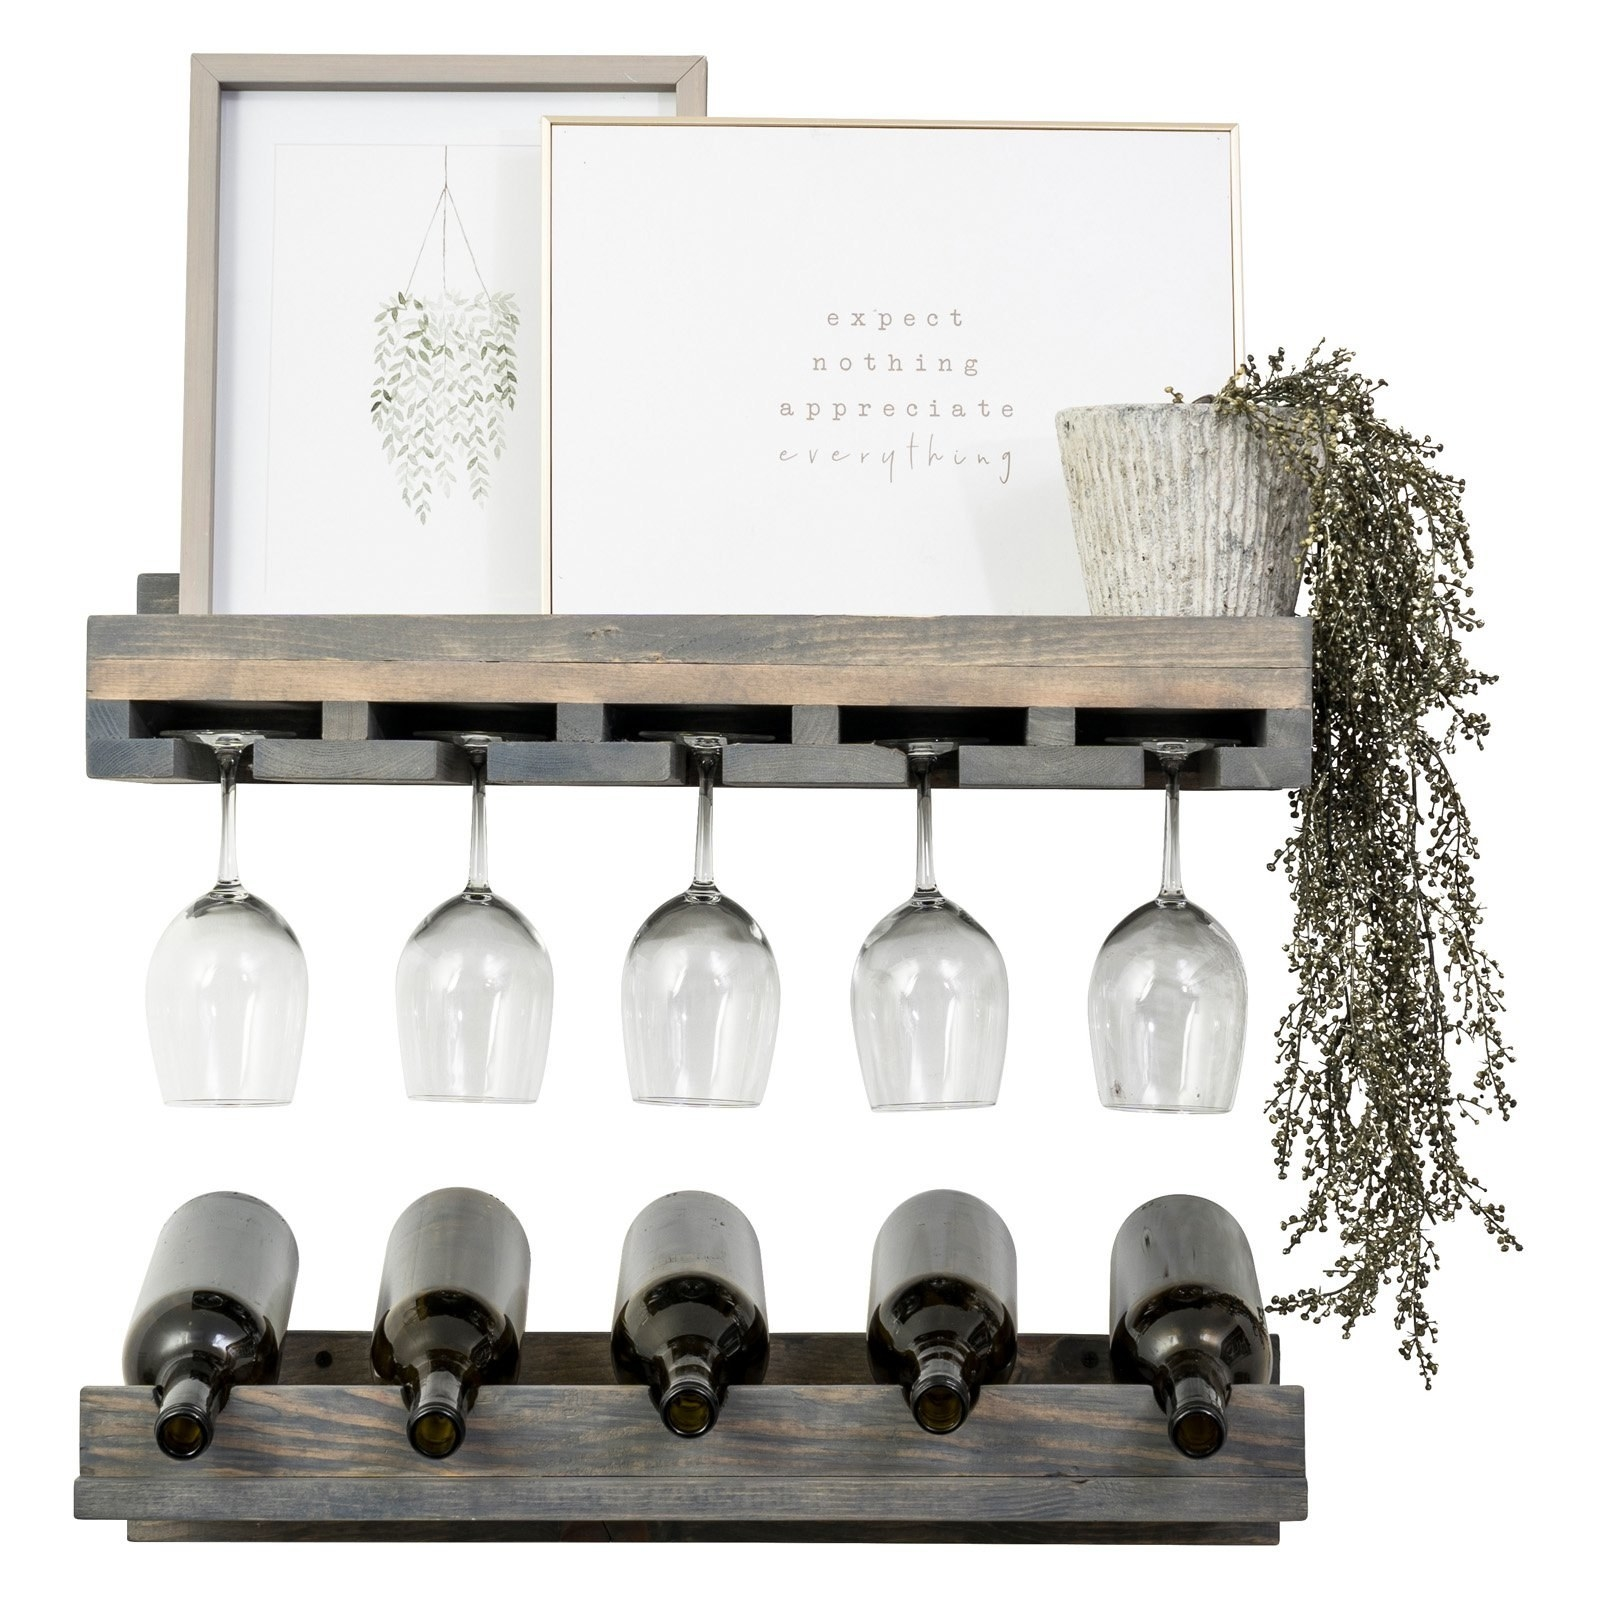 the wine rack displayed with wine glasses, plants, and decorations on it